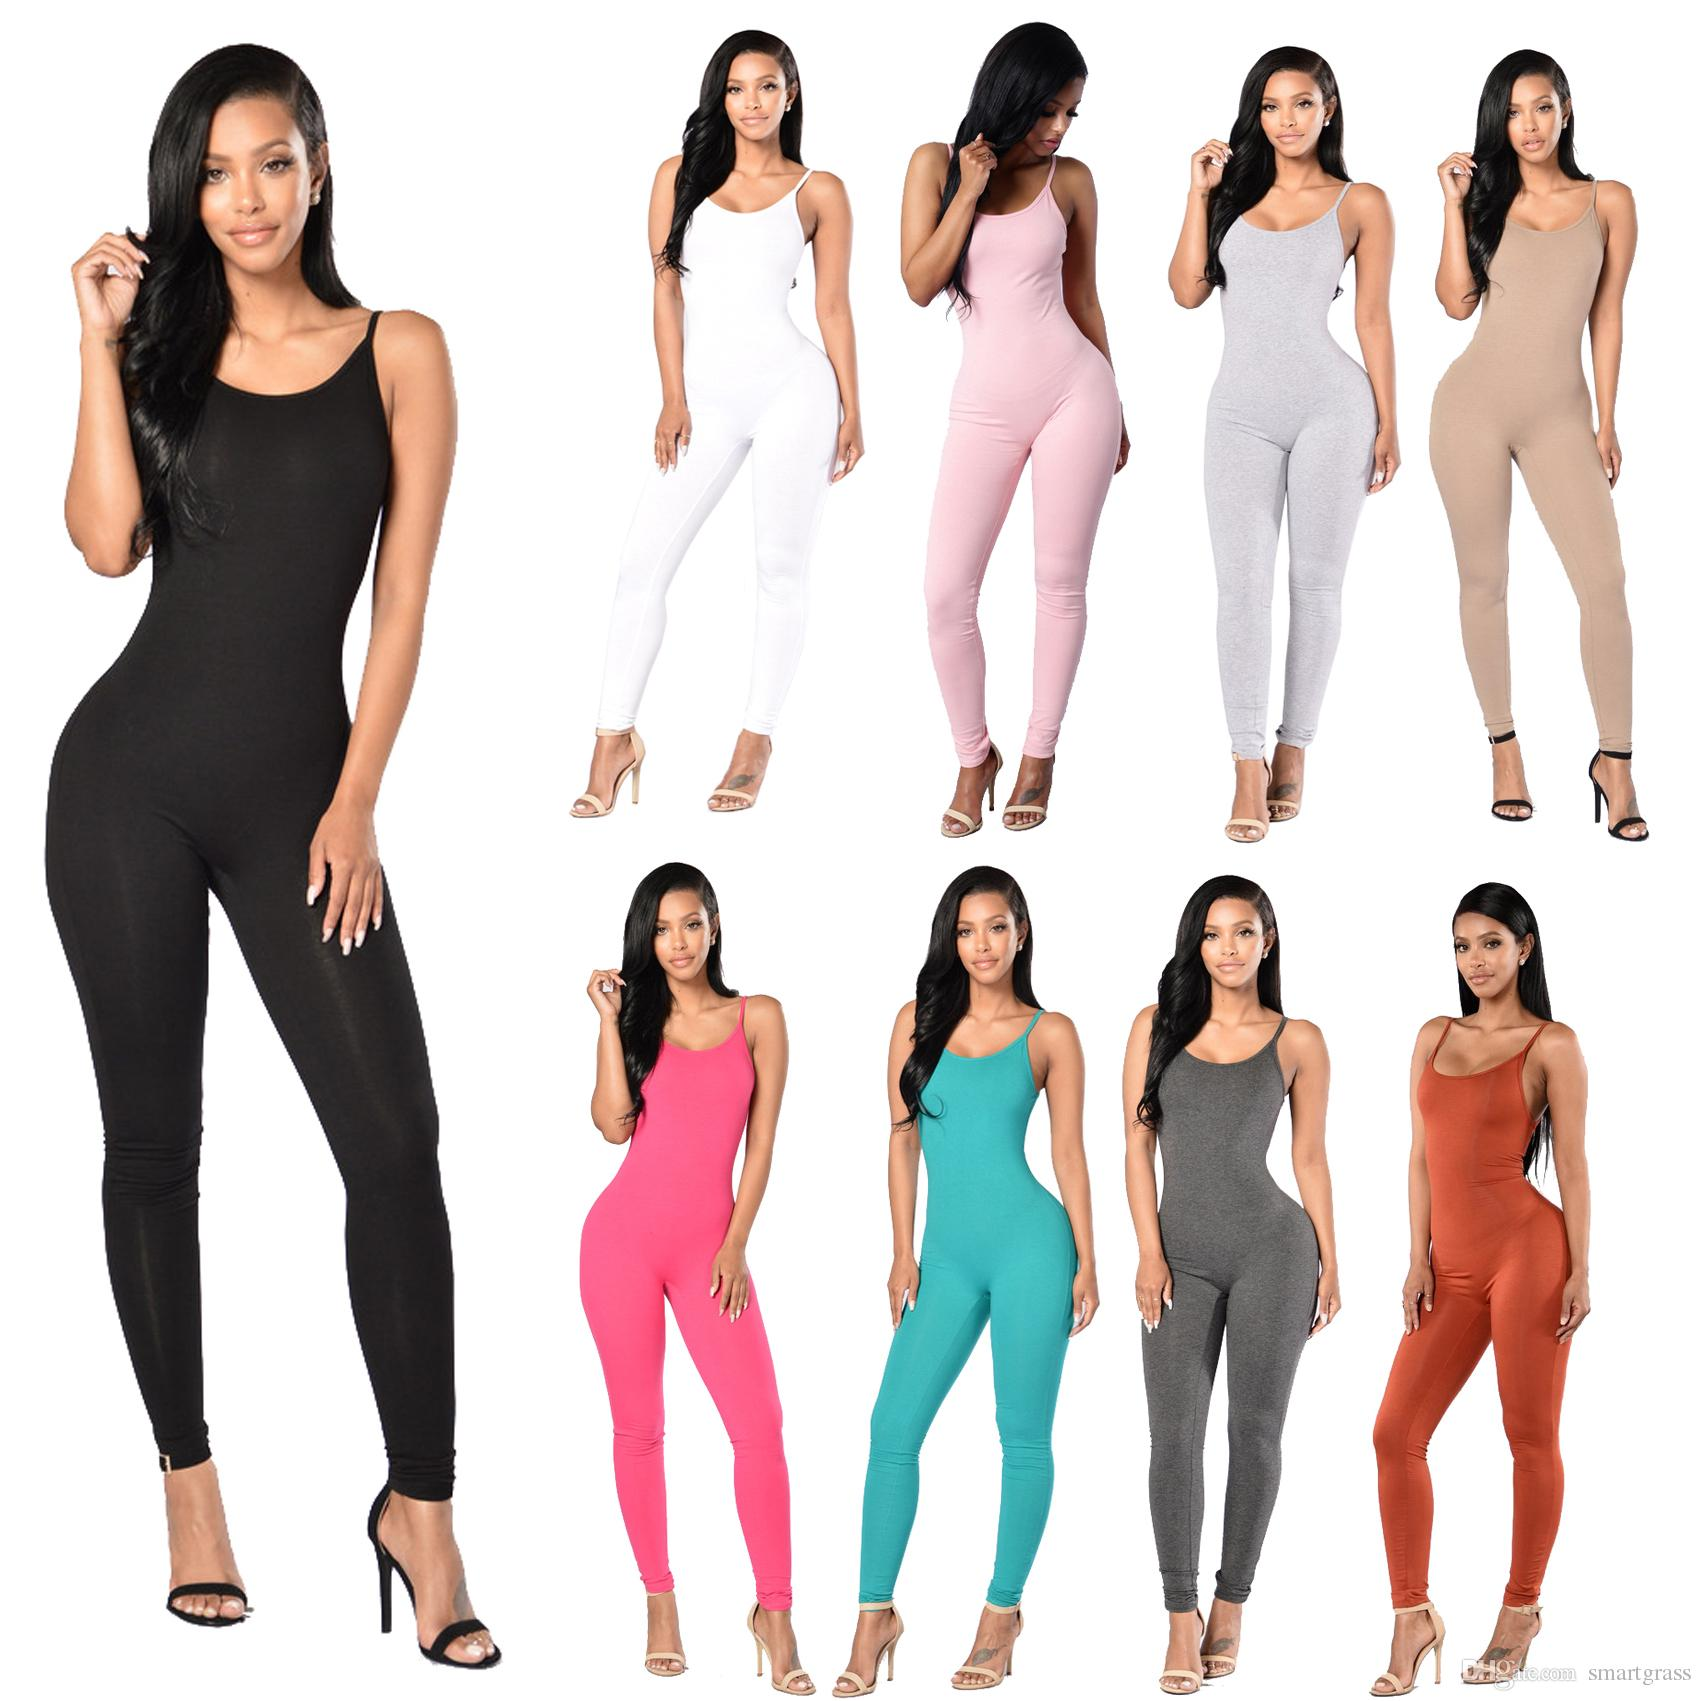 6441dad5ec7f9 2019 Rompers For Women Ladies Jumpsuits Women One Piece Sports Jumpsuit  Women Casual Clothes Size 4 12 Drop Shipping From Smartgrass